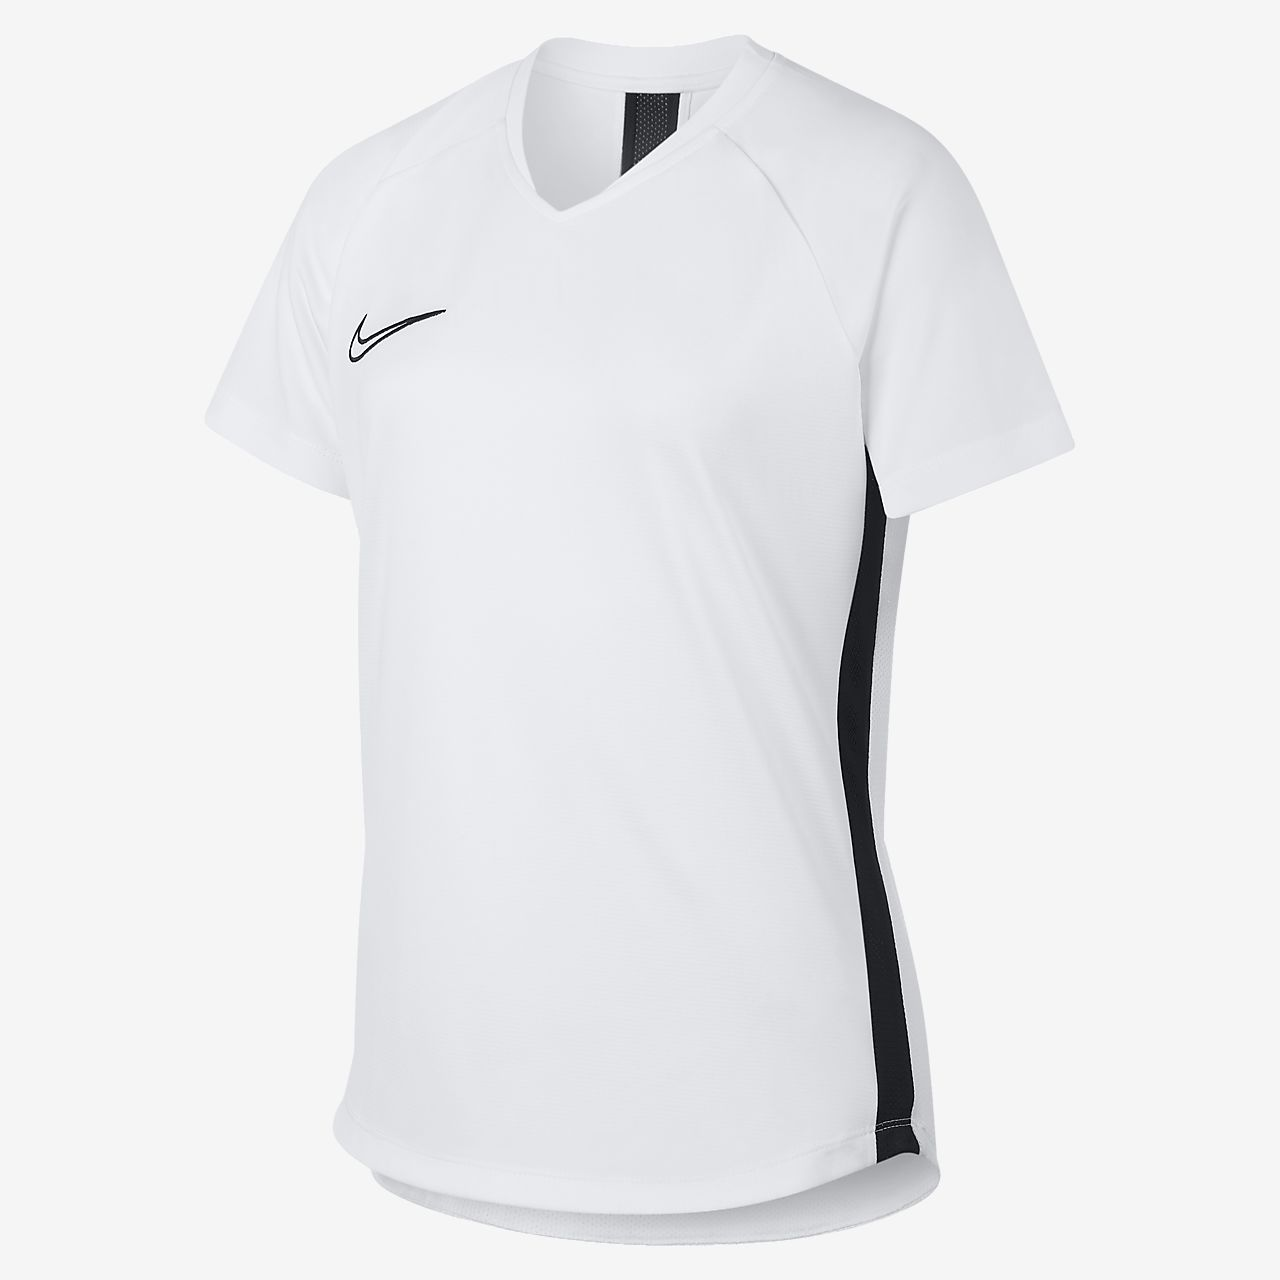 Nike Dri-FIT Academy Big Kids' Short-Sleeve Soccer Top